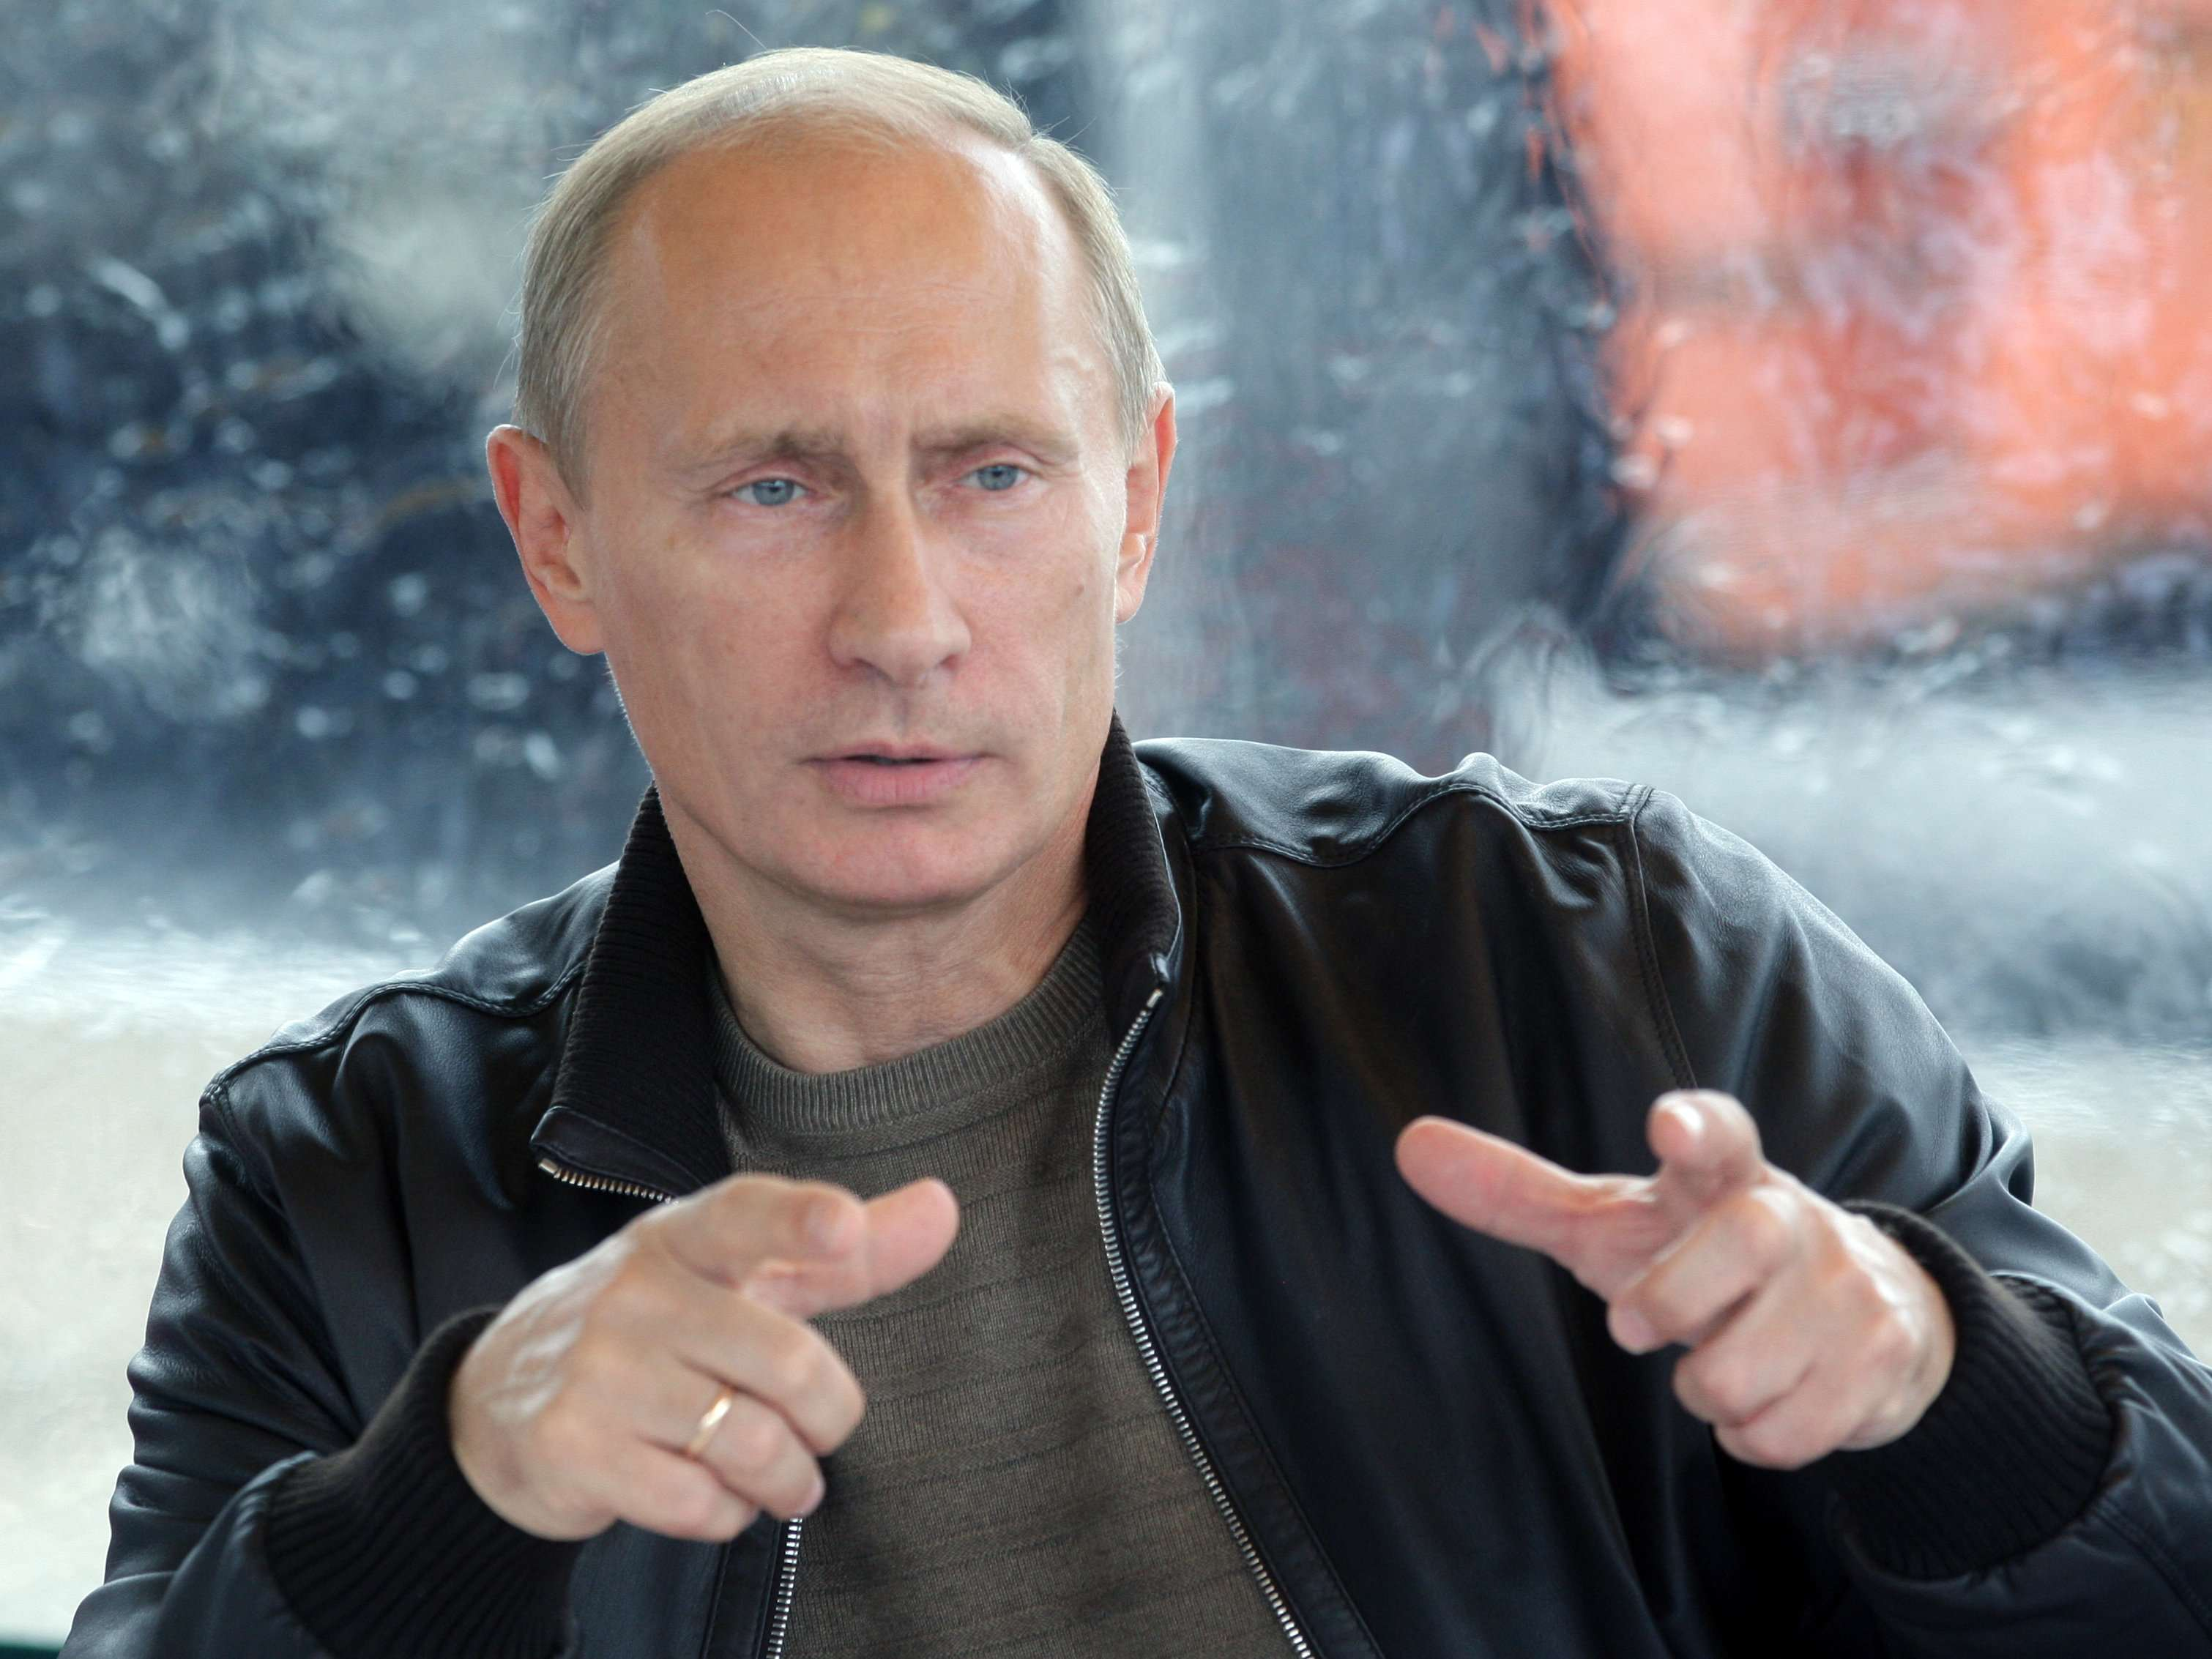 Vladimir Putin Disappears After Cancelling Public Appearances vlad3